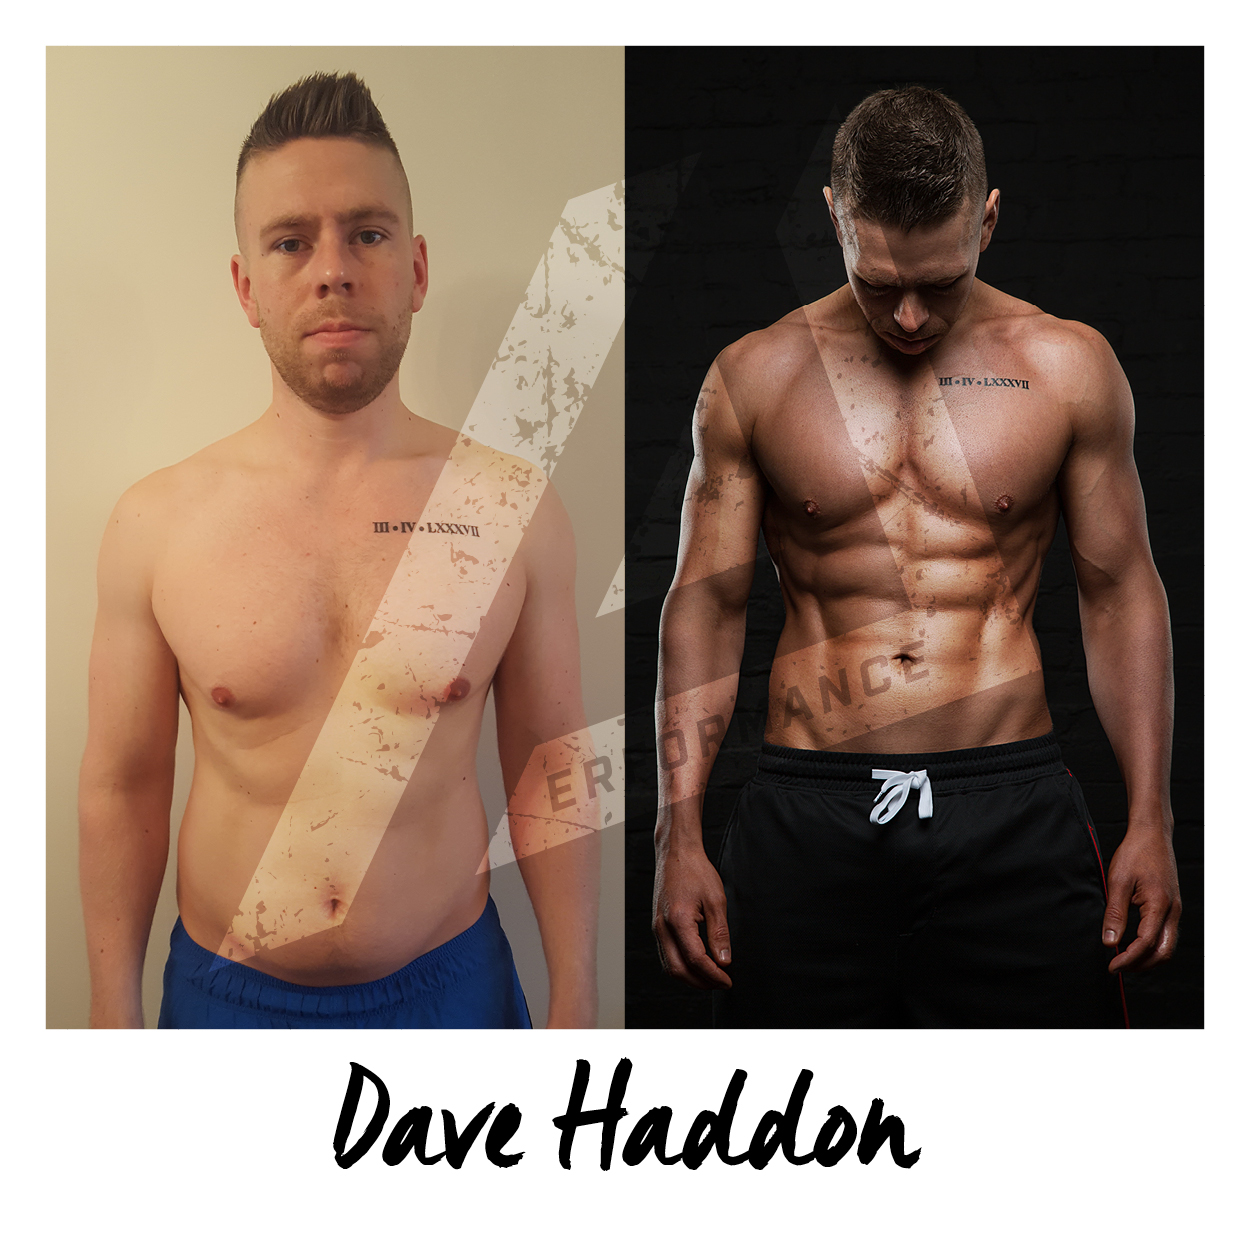 I'd like to introduce Dave who took part in my 12-Week Photoshoot Challenge and got some insane results… (as you can see!). Dave was a pleasure to coach, really brought into the whole process 110% and was just like a sponge the 12 weeks, just soaking up everything I told him!